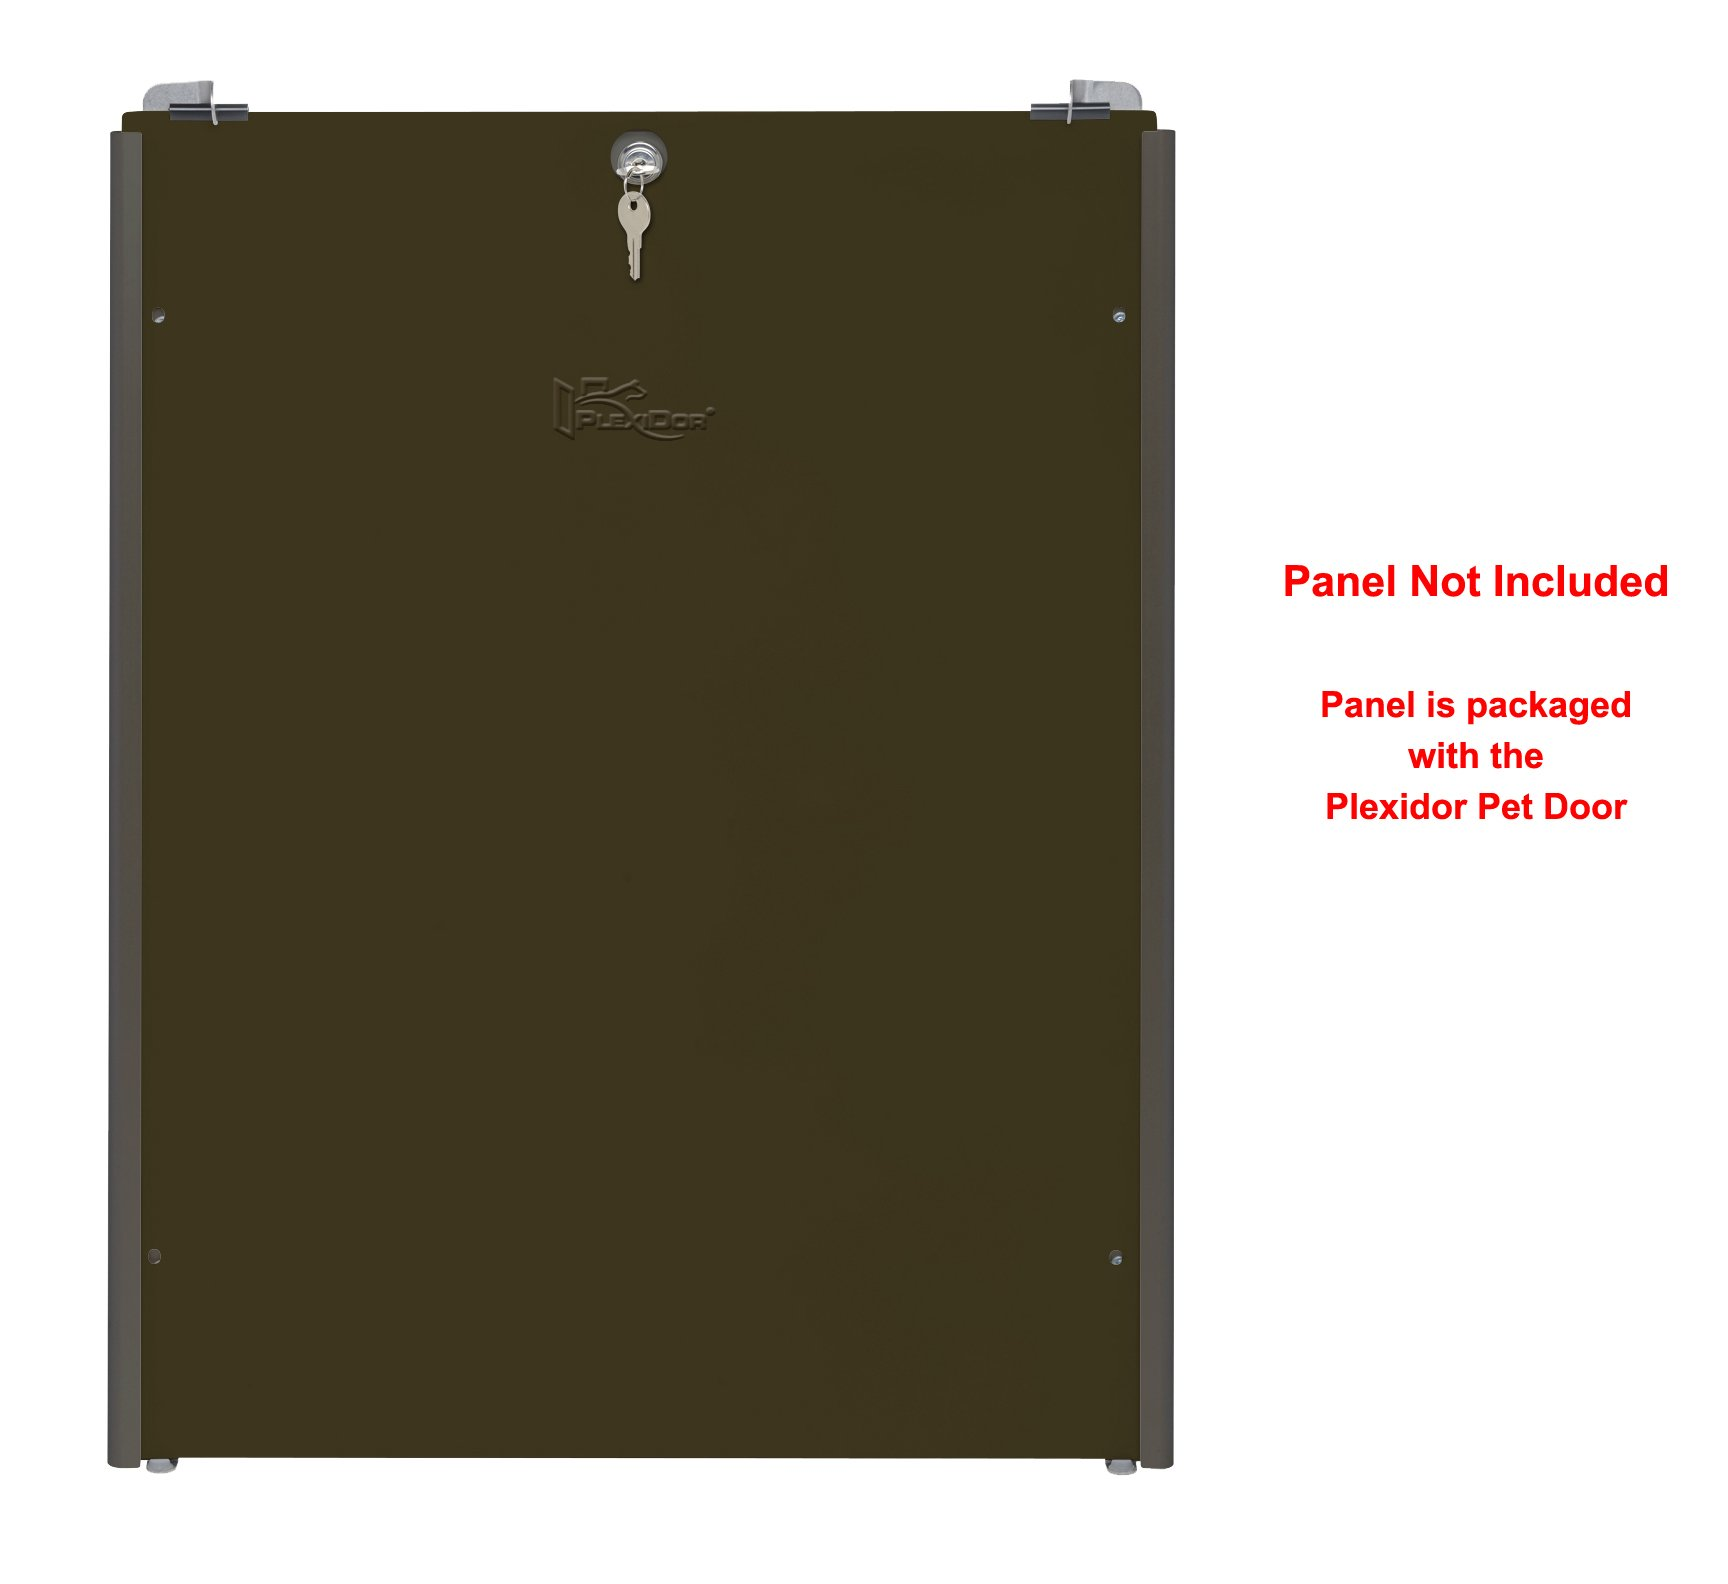 Plexidor Easy Slide Tracks for Security Panel that's Included with Extra Large Bronze Plexidor Pet Doors - Easy Mount, Easy Locking Security Panel Tracks